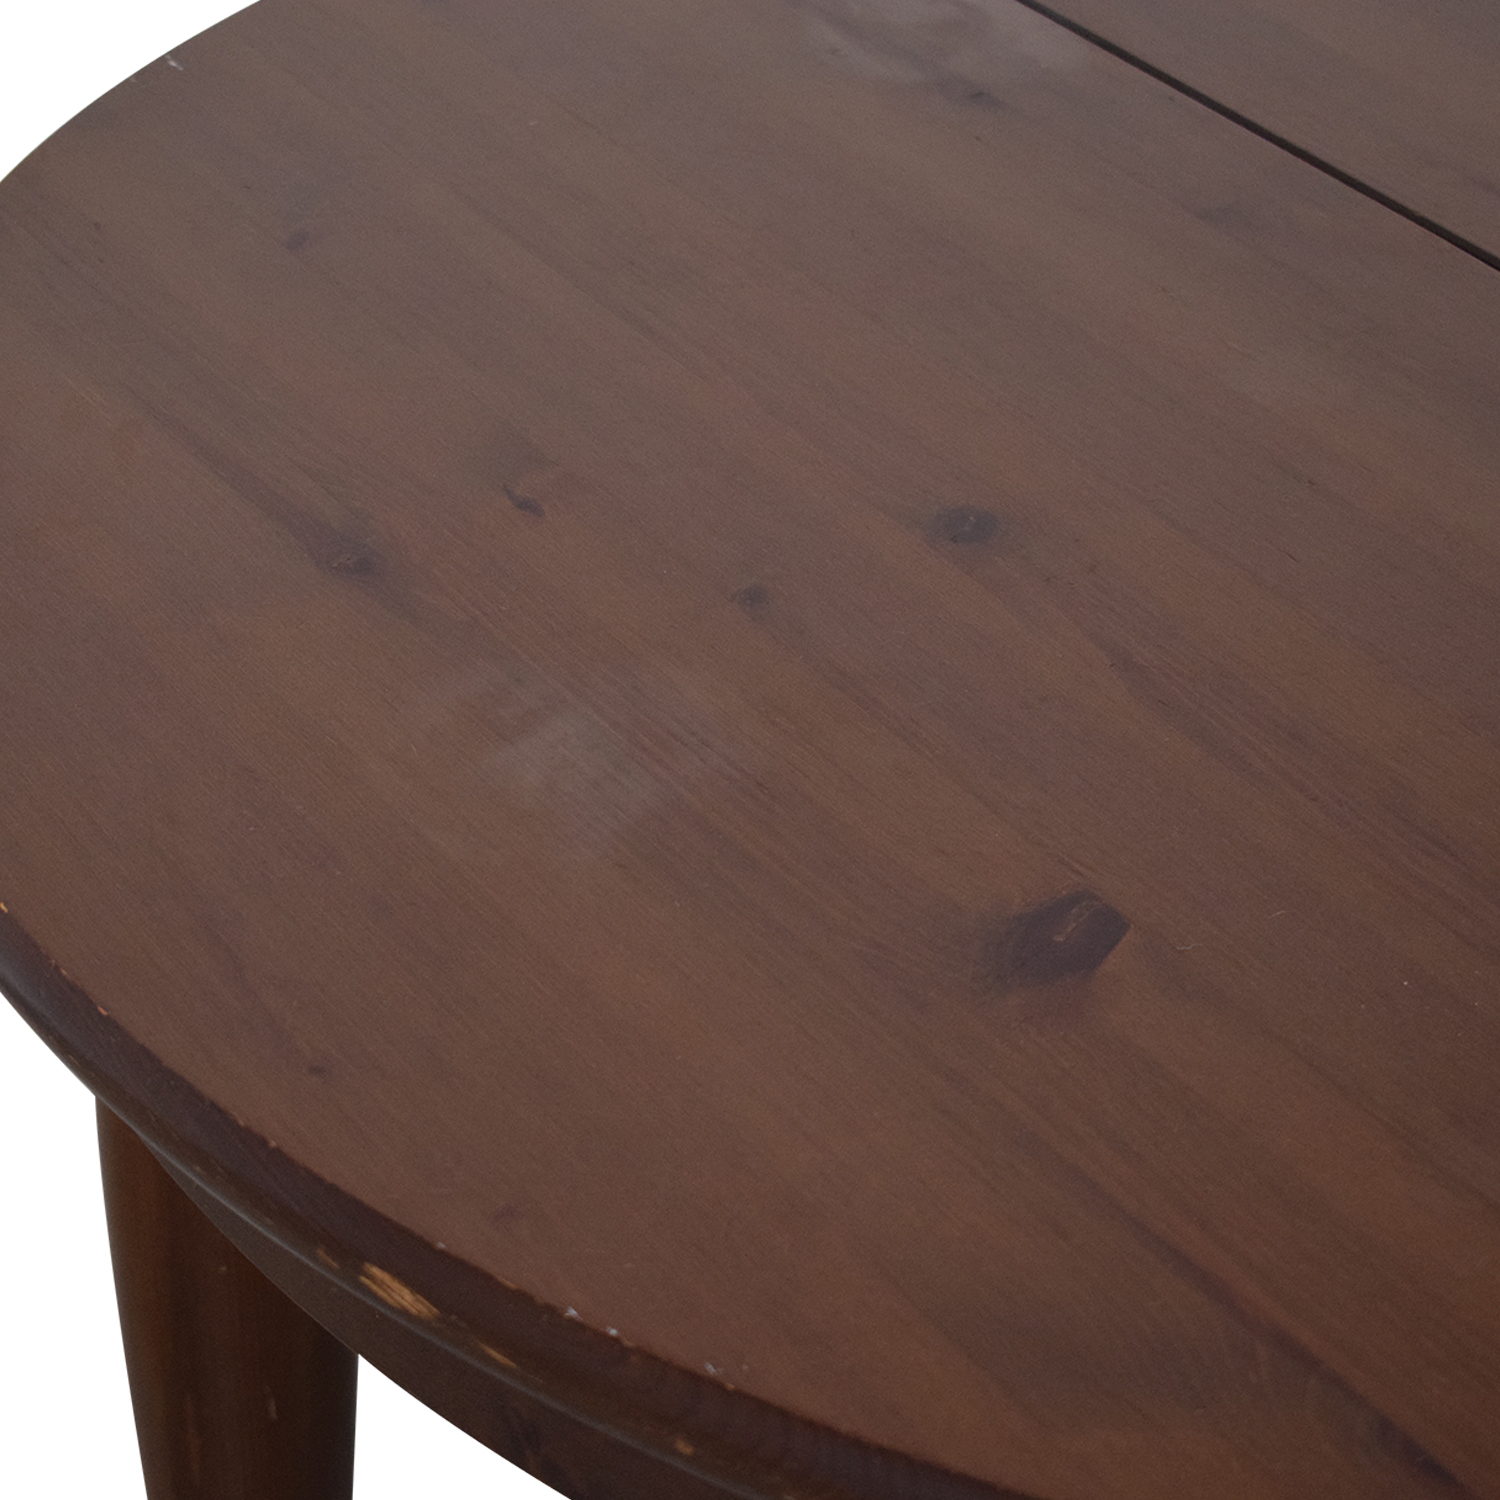 Pottery Barn Pottery Barn Round Extension Dining Table for sale